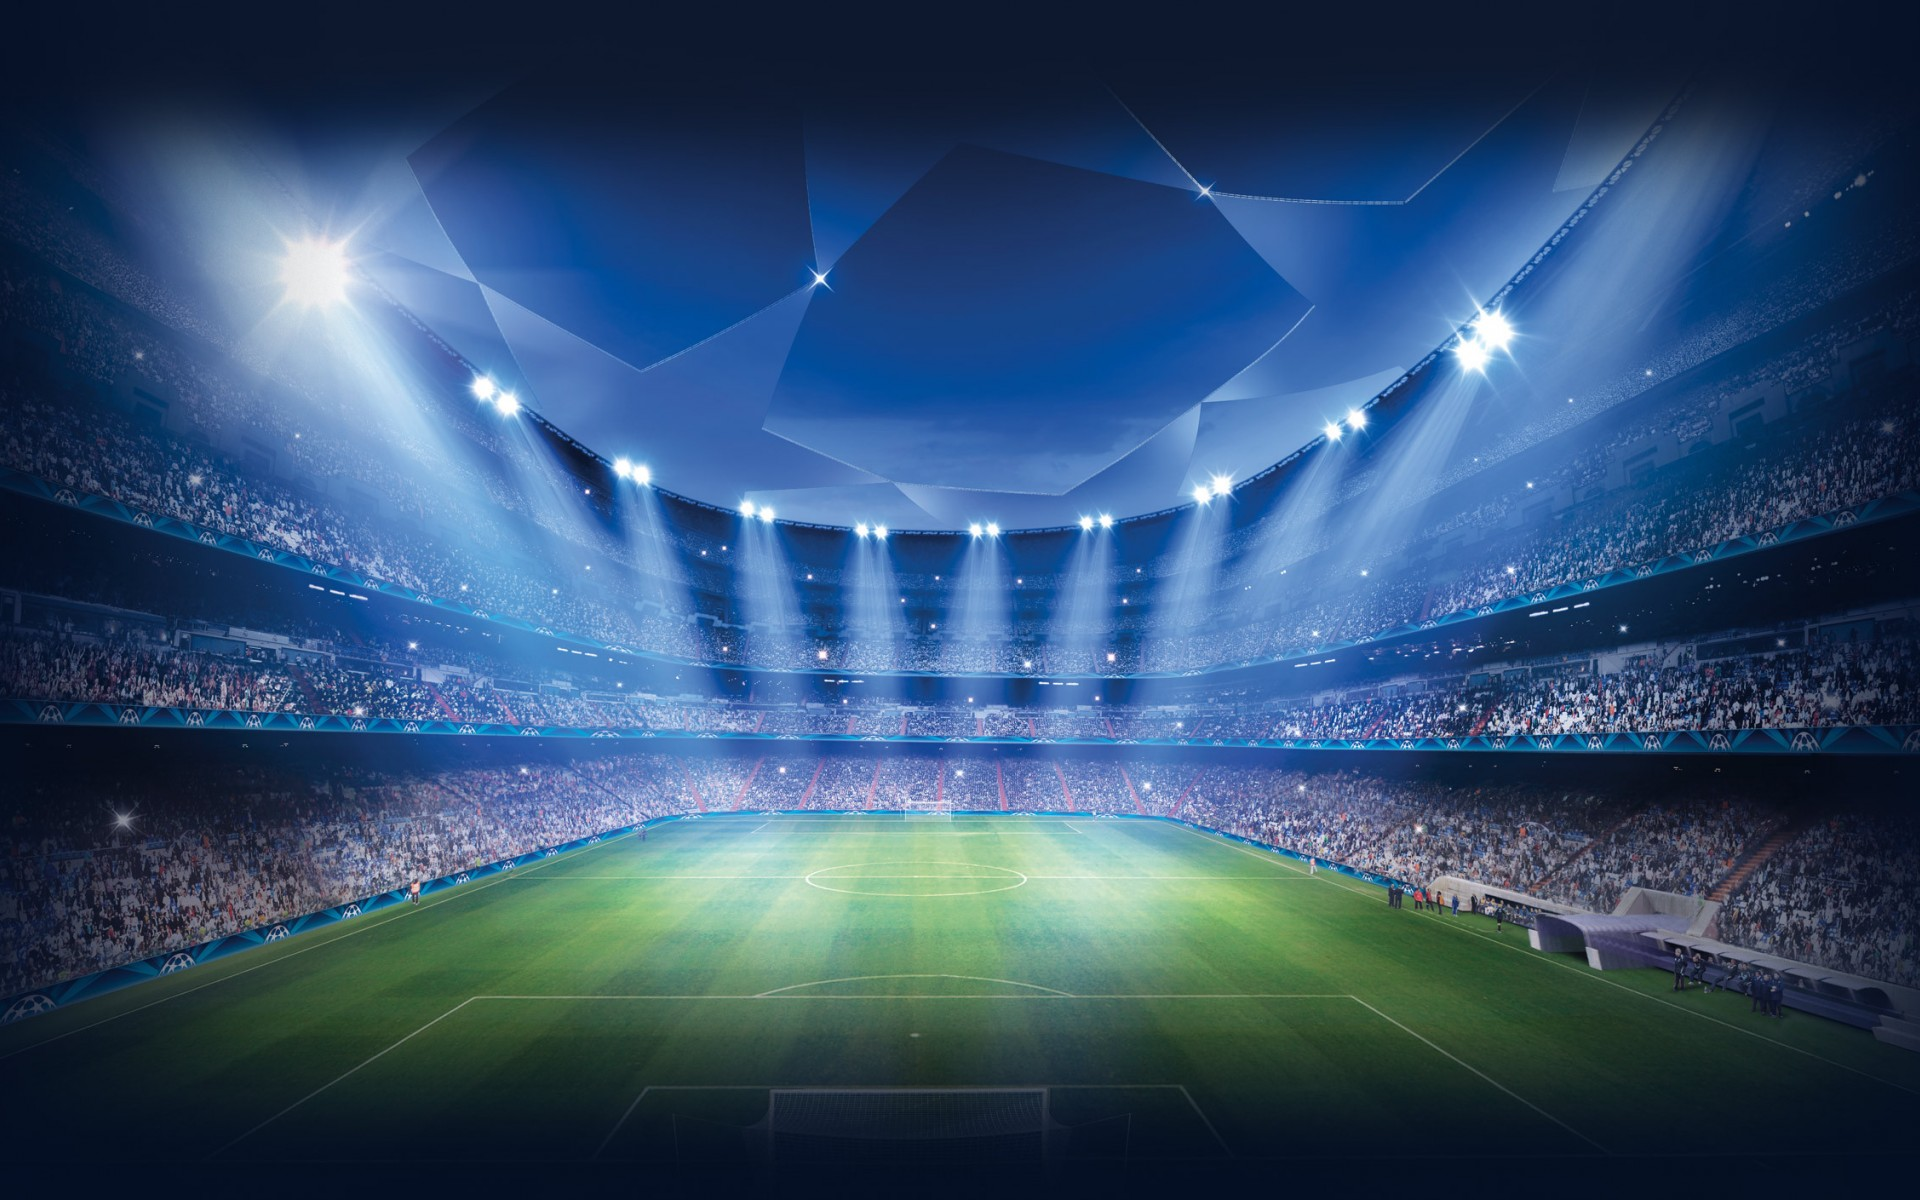 Wallpaper UEFA Champions League Stadium